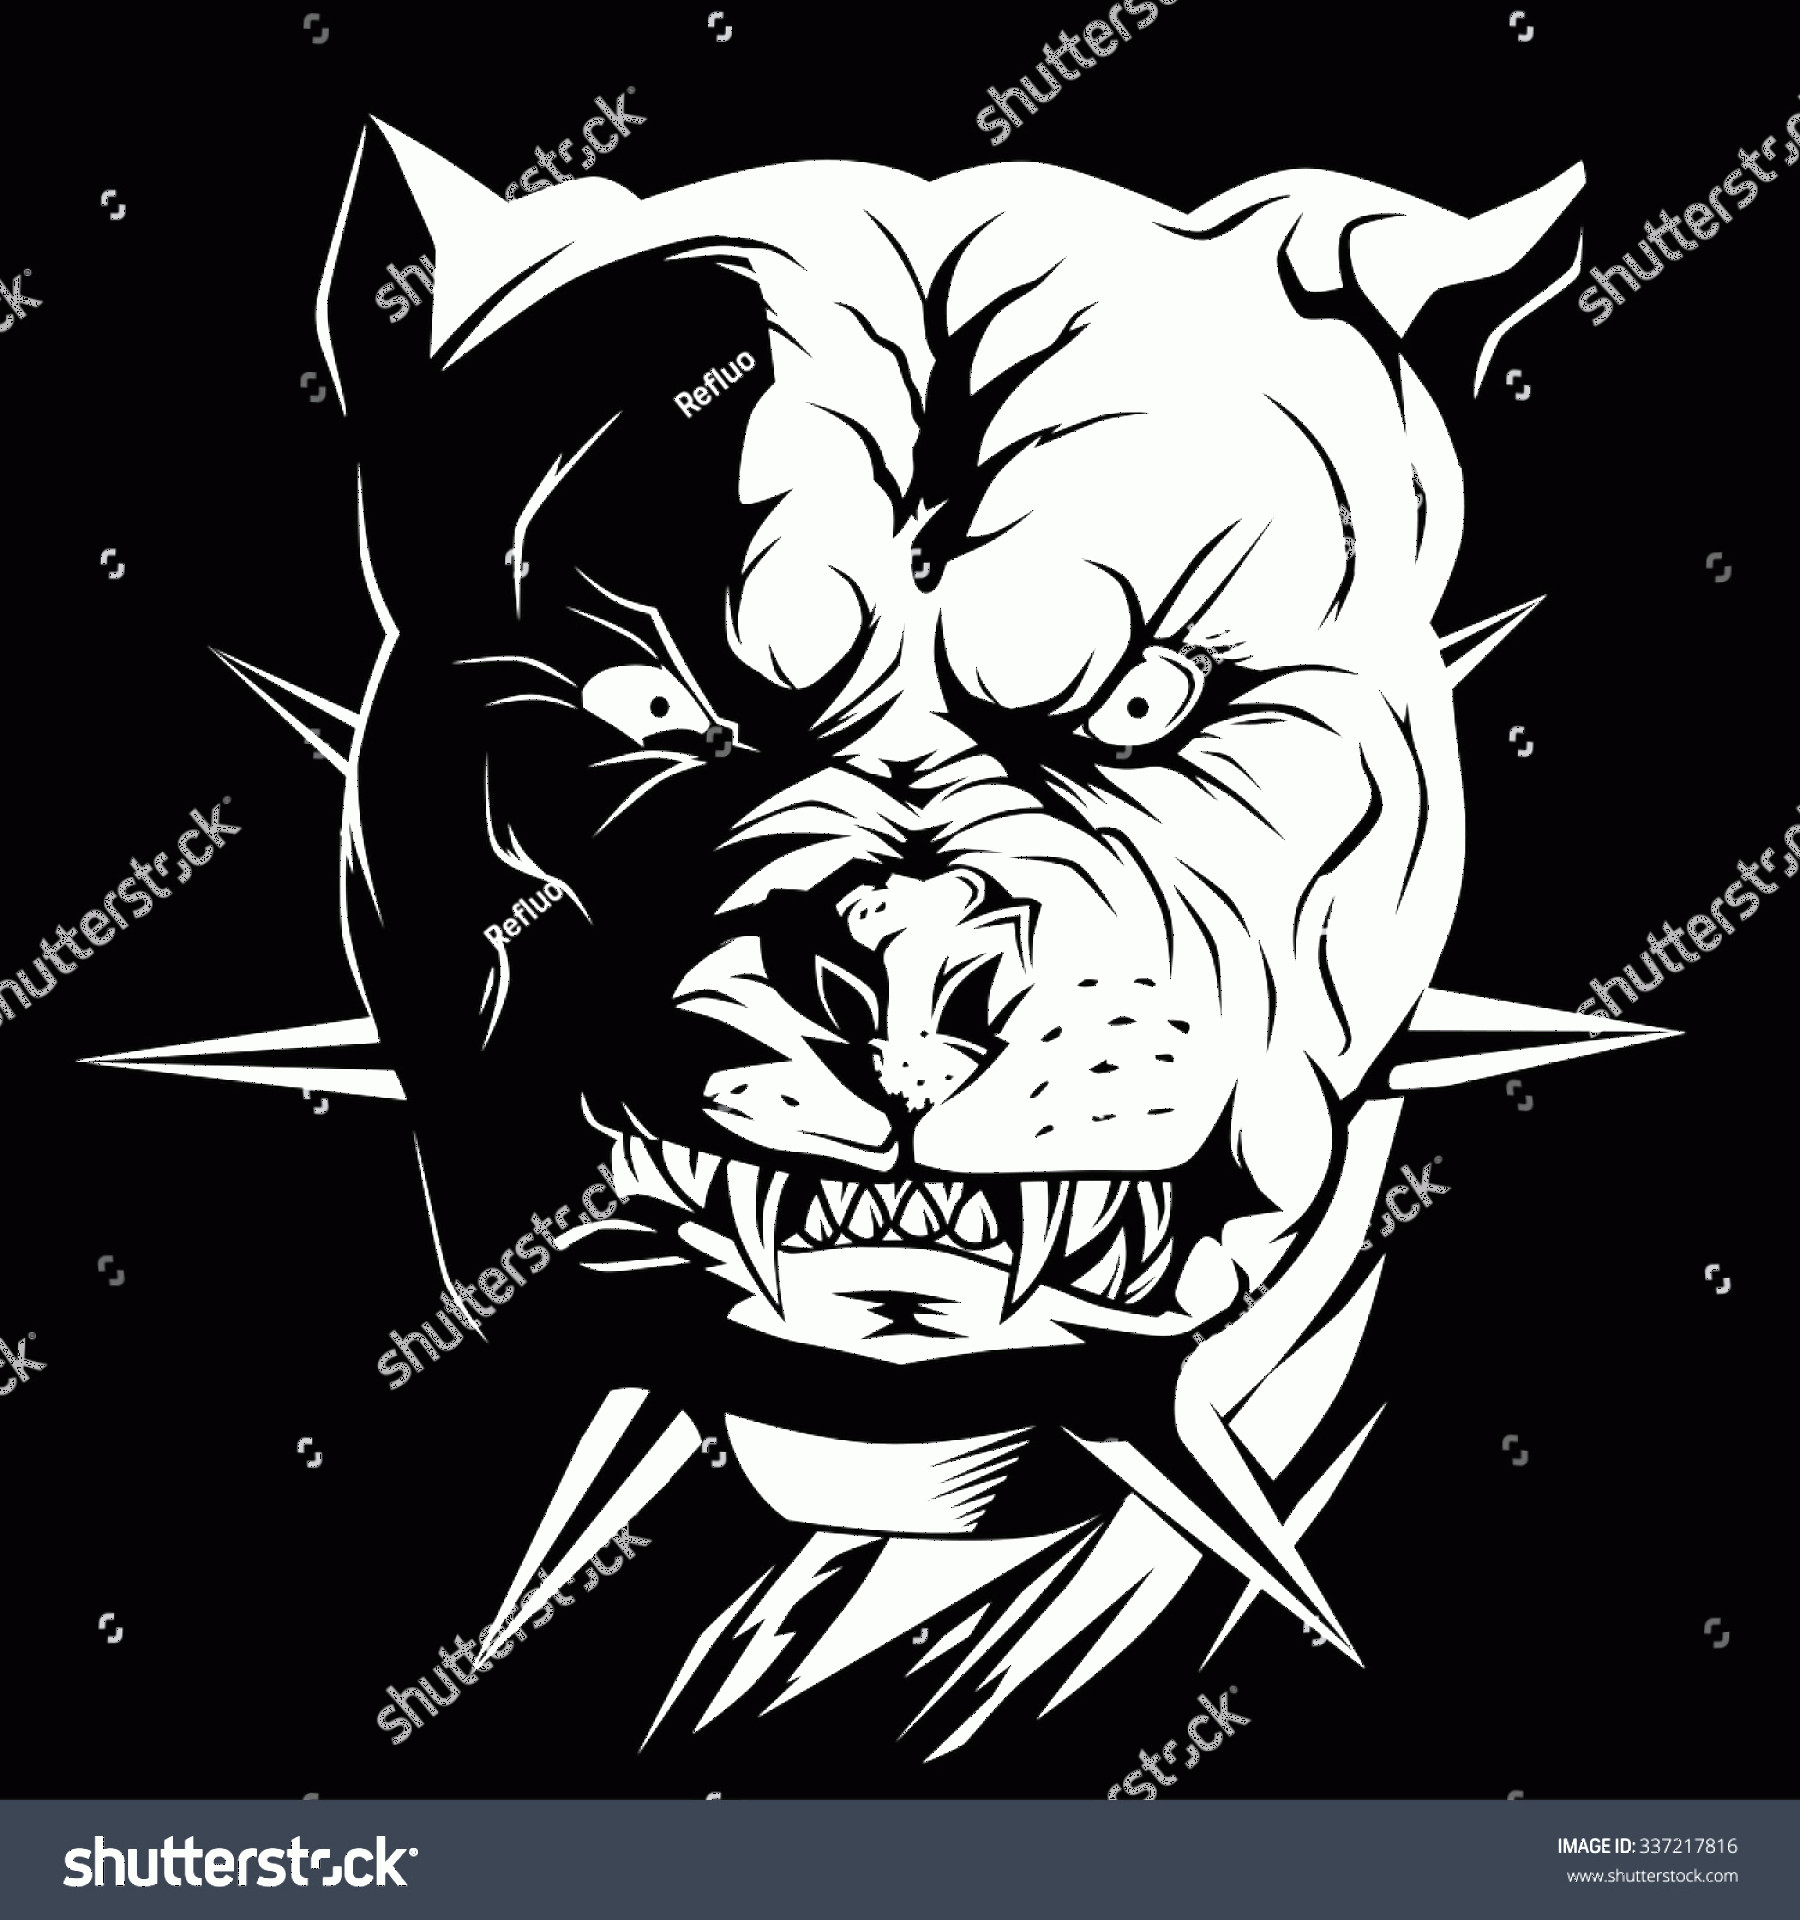 Angry Dog Vector Black And White: Vector Black White Head Angry Dog